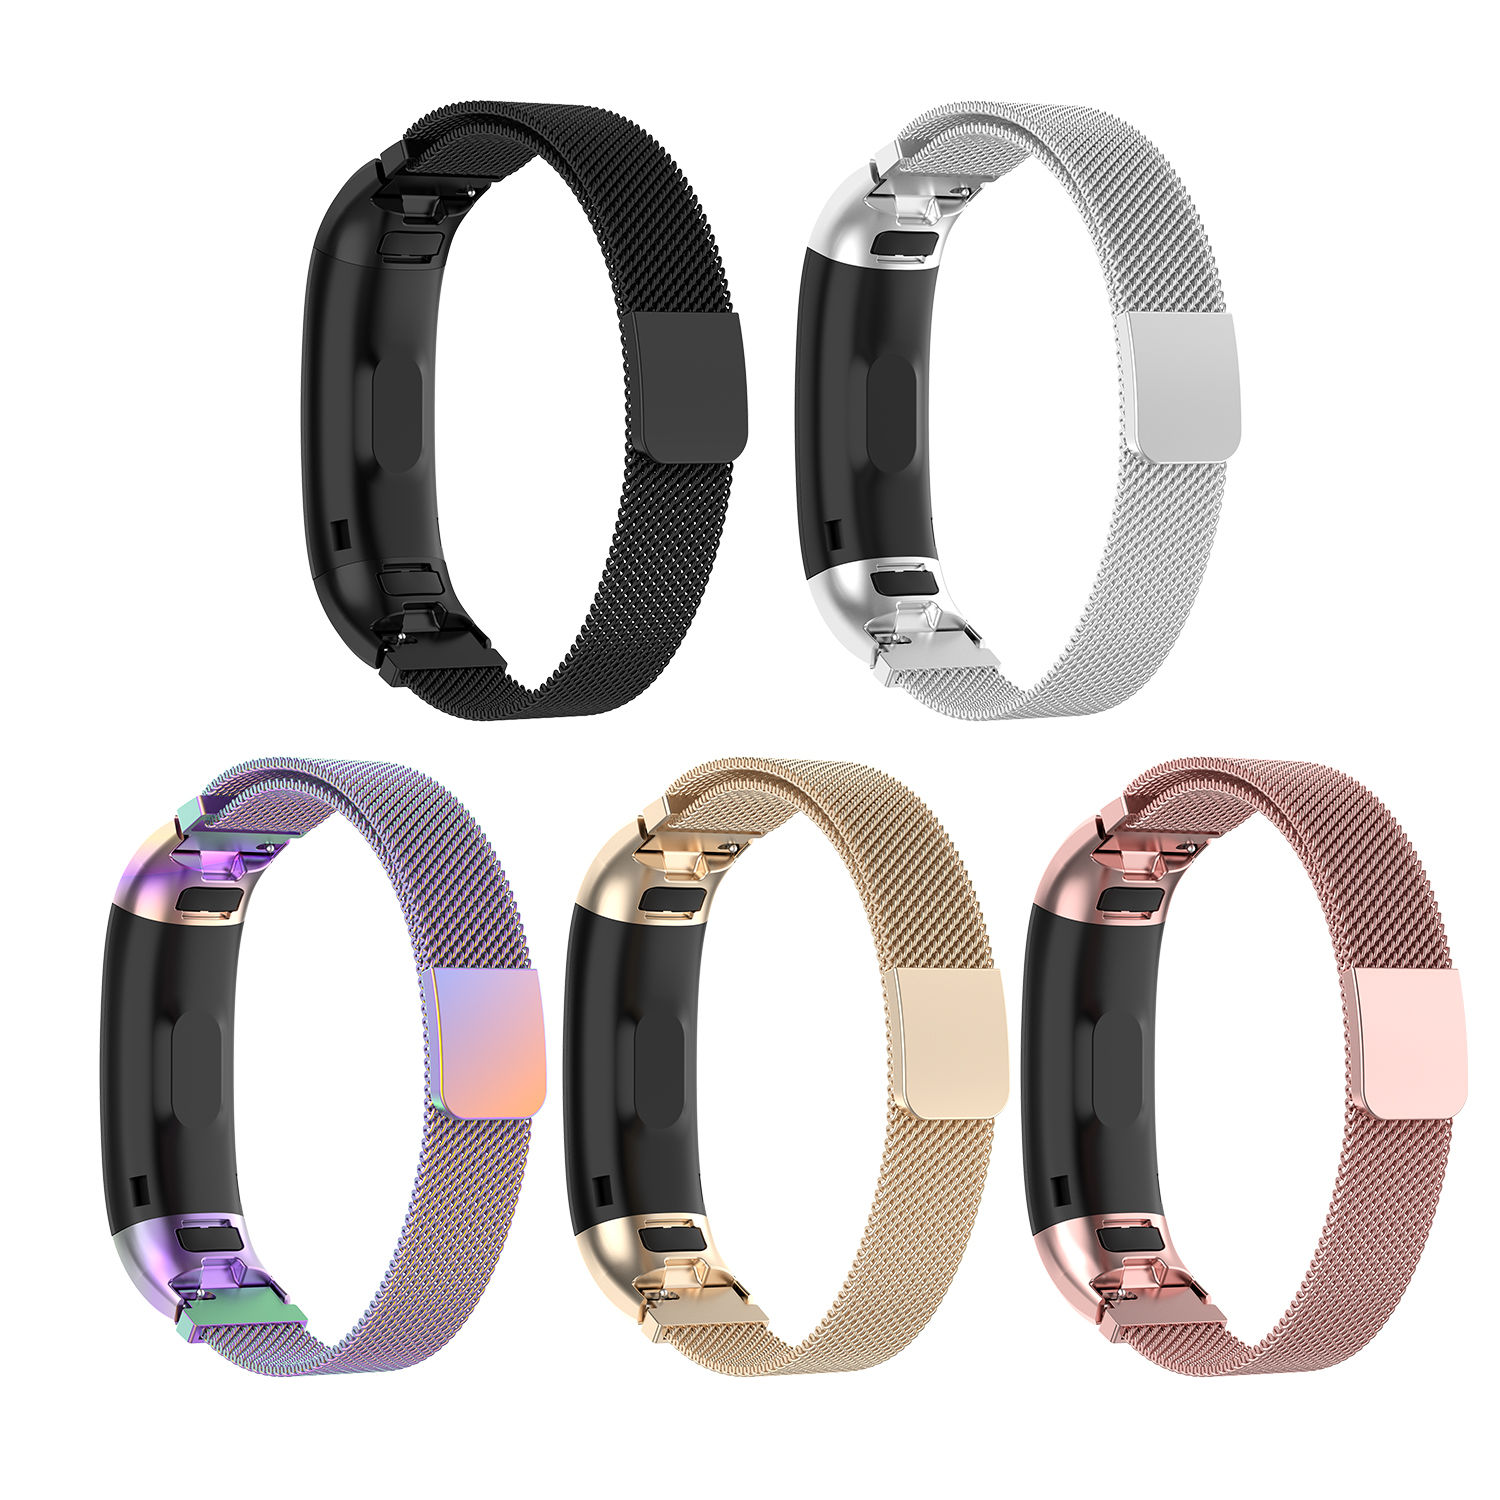 correa Wristband Bracelet Stainless Steel Wrist Strap For Huawei band 3 / band 3pro / band 4 pro watch band Magnetic Milanese